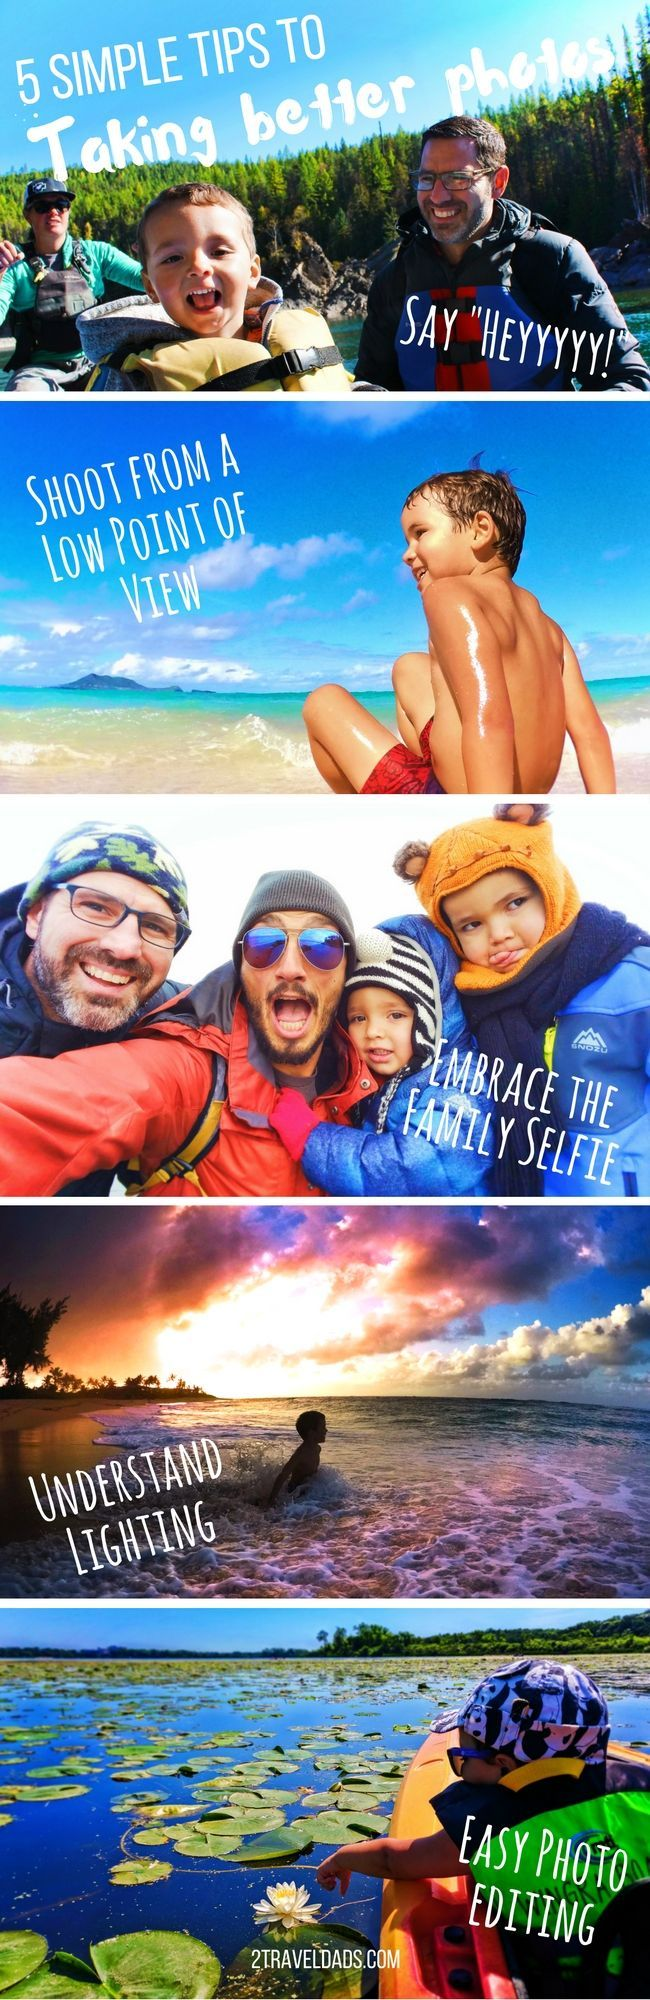 Take better photos when traveling or every day with these 5 simple tips. Travel and family photography made smart and easy. 2traveldads.com